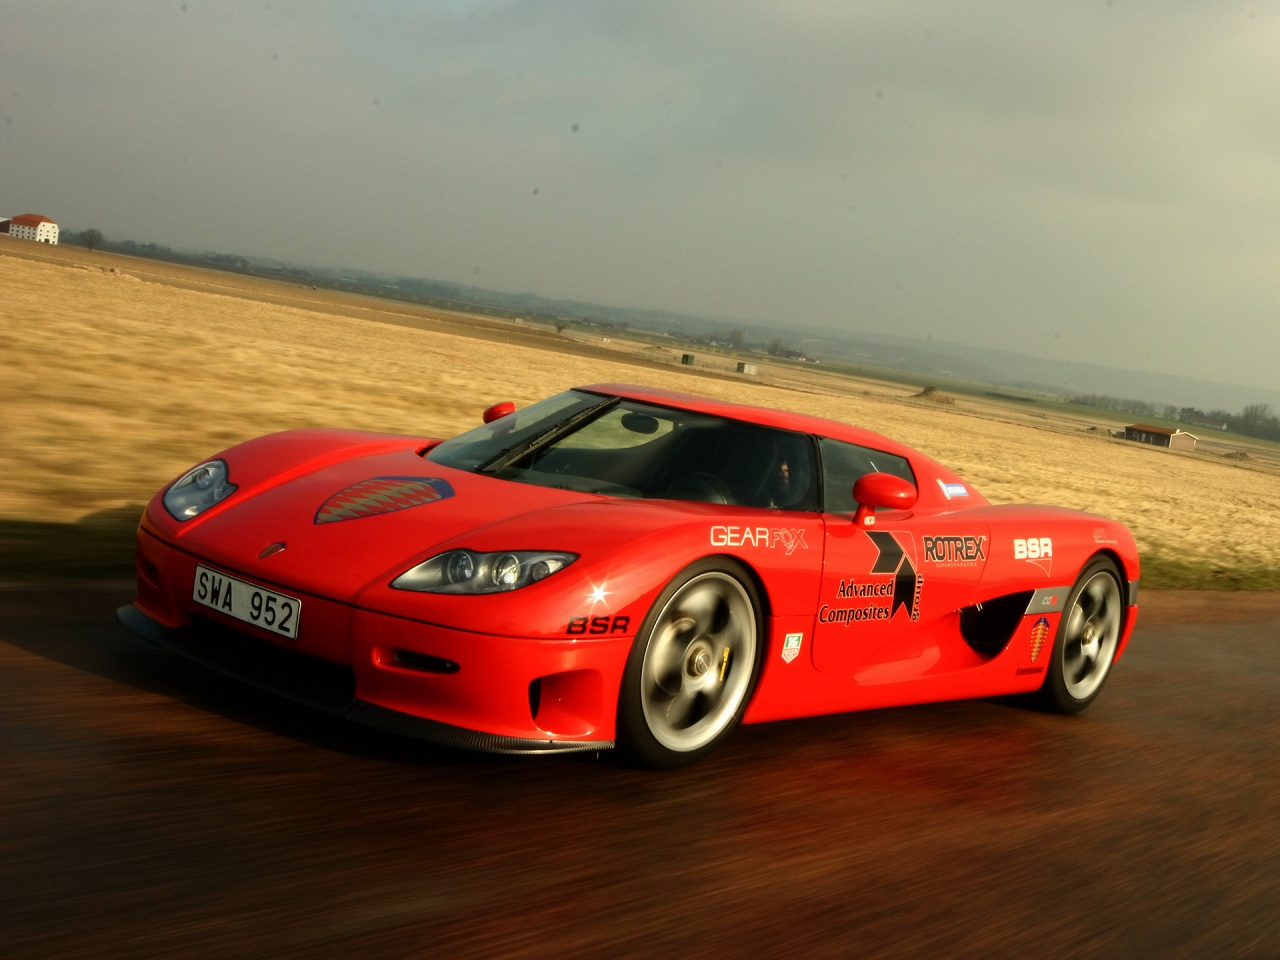 2005 koenigsegg ccr motor desktop hp 6700 manual pdf hp 7500 manual